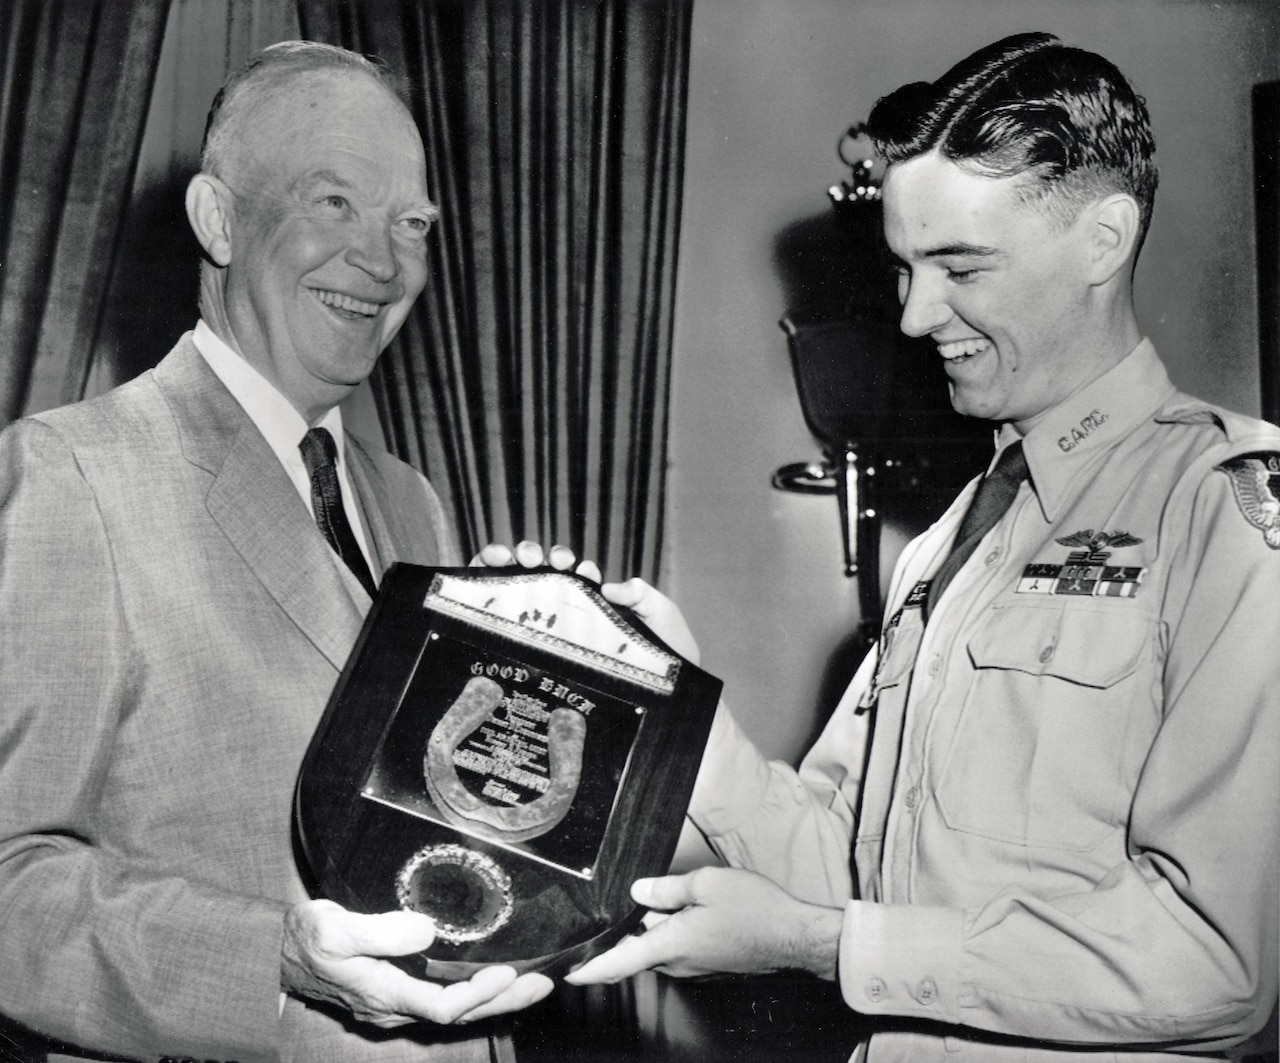 Two men smile while they hold a plaque.